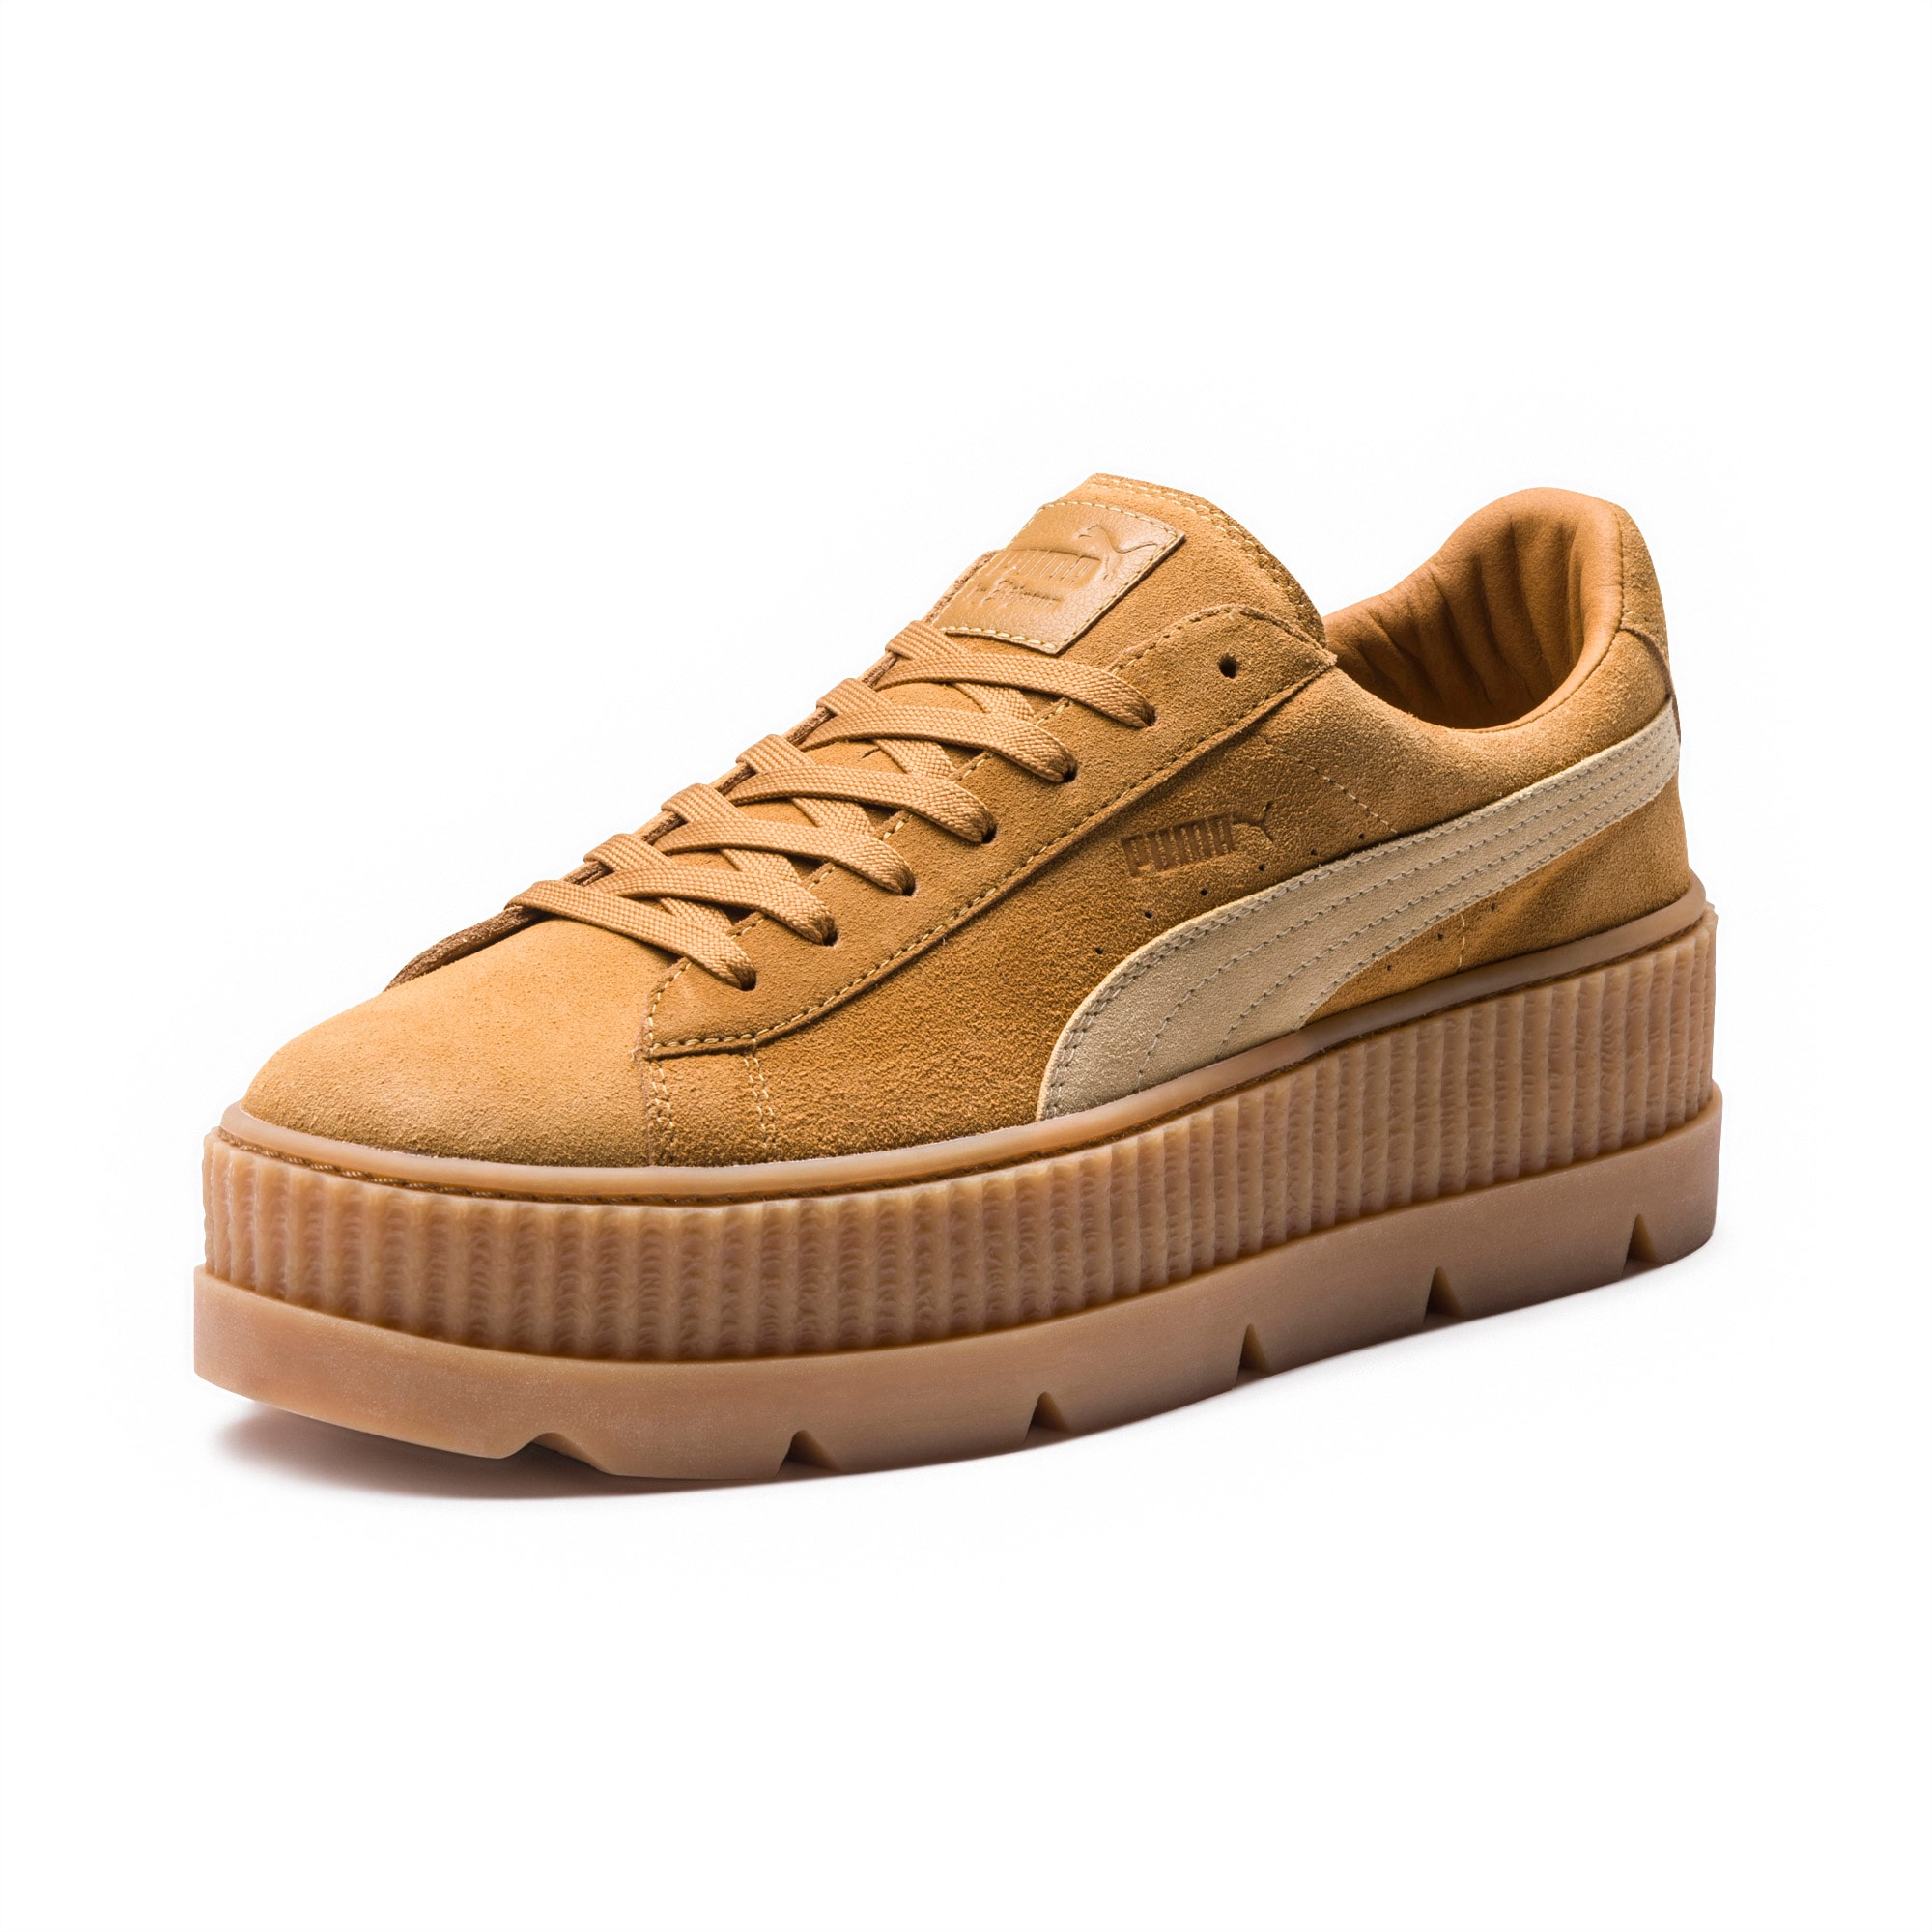 Fenty Puma cleated creeper suede sneakers